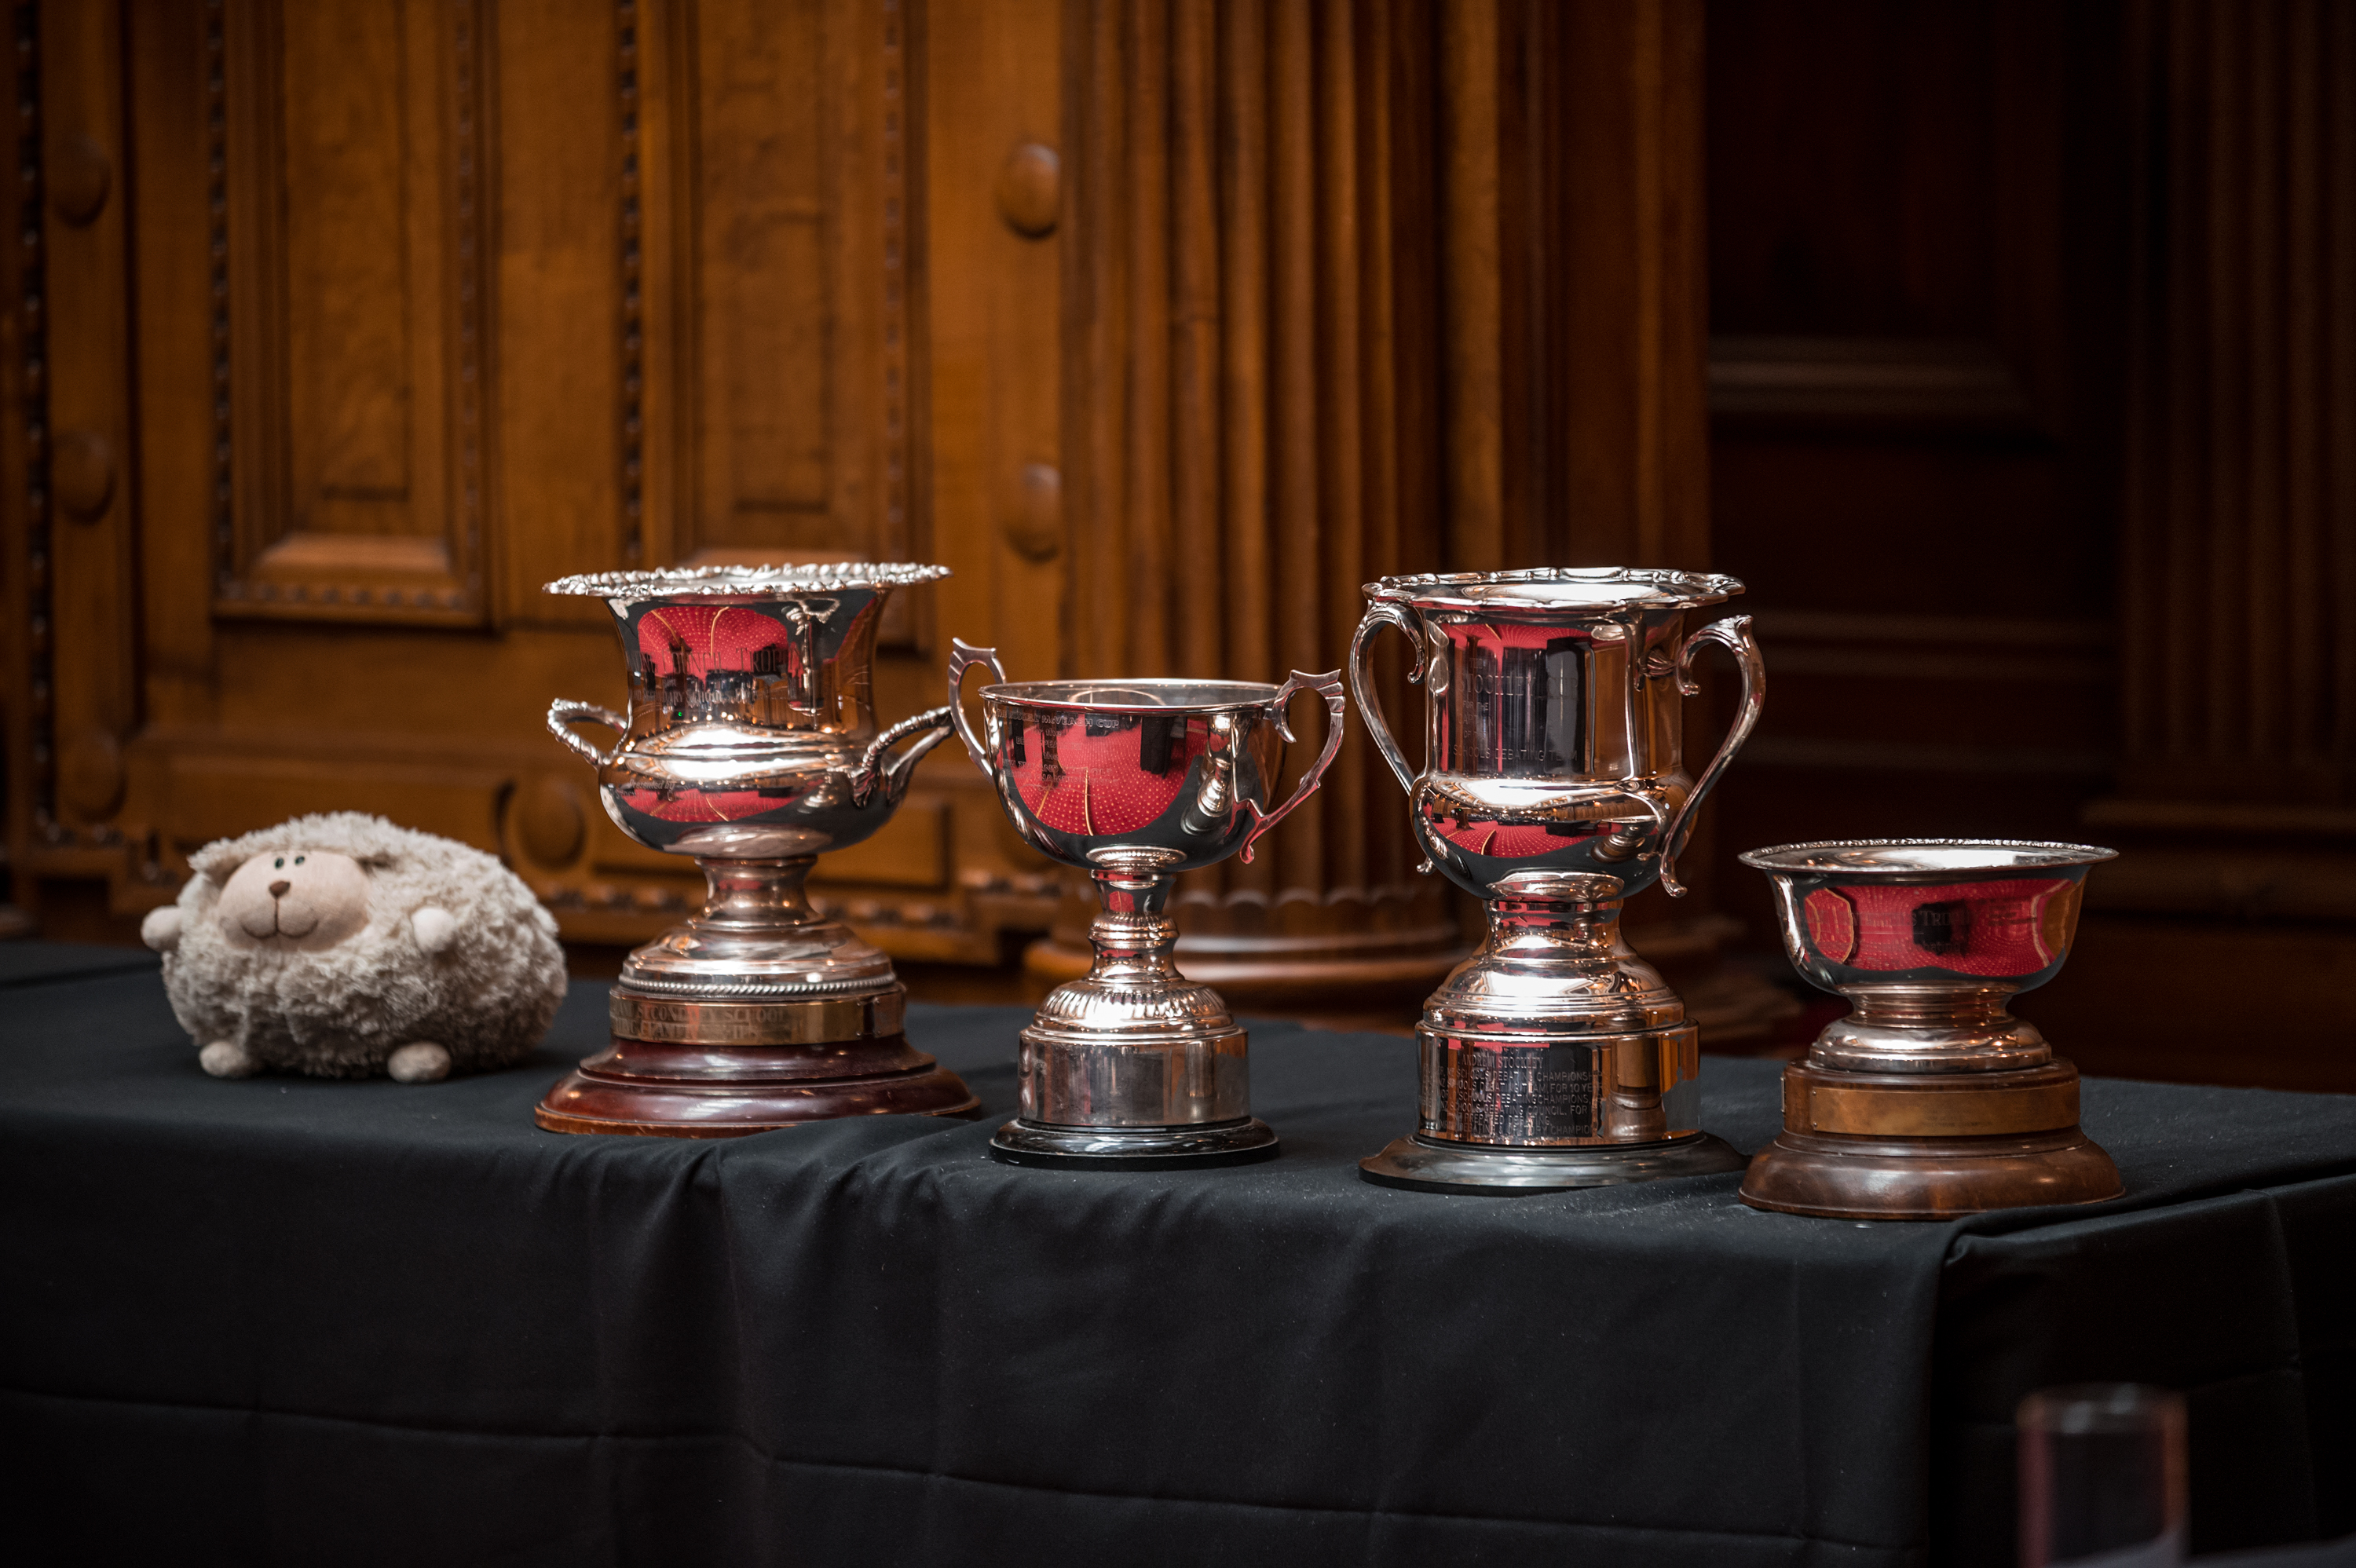 Applications Open to Adjudicate the 2017 National Finals